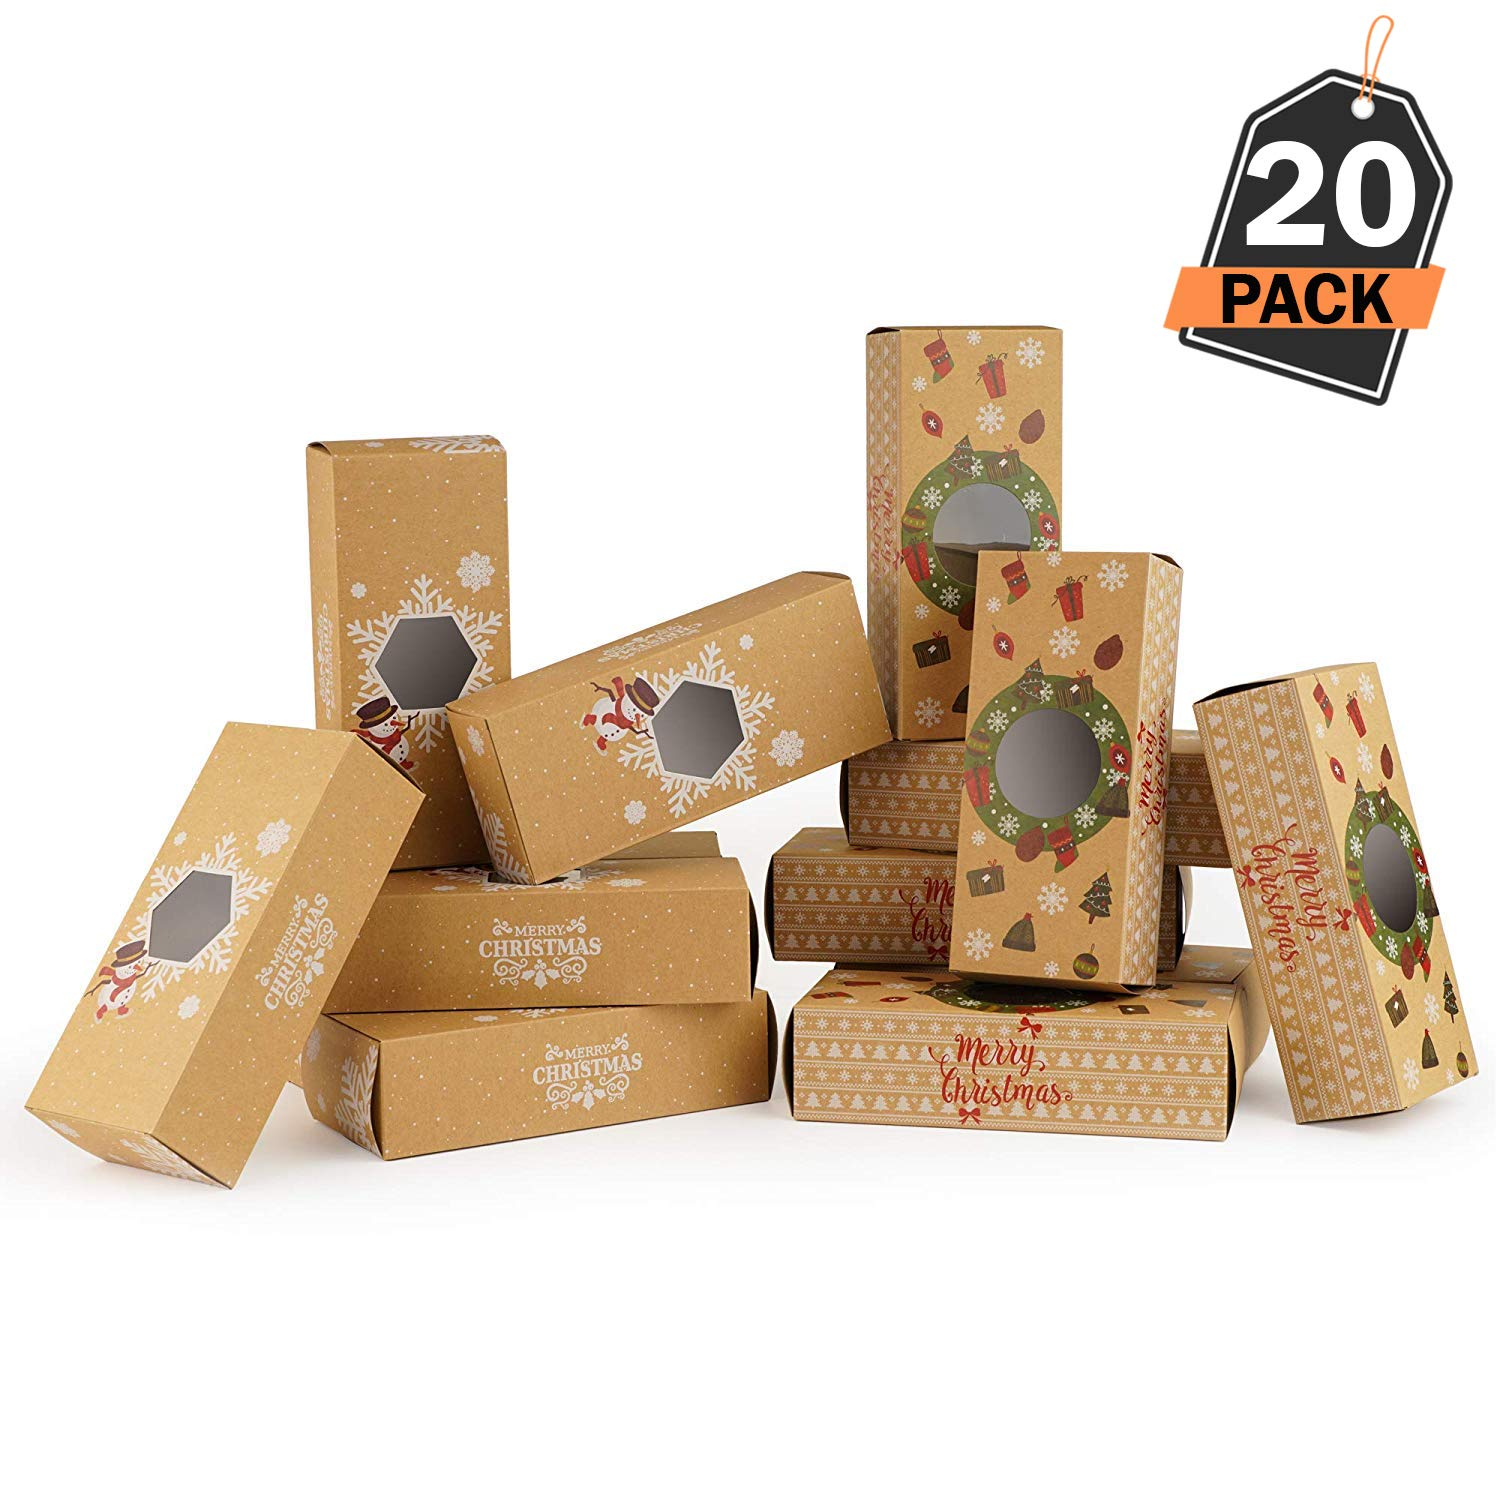 20 Piece Christmas Gift-To-Go Boxes, Holds Christmas Treats and Gifts - For Holiday Gift Giving Scale Rank